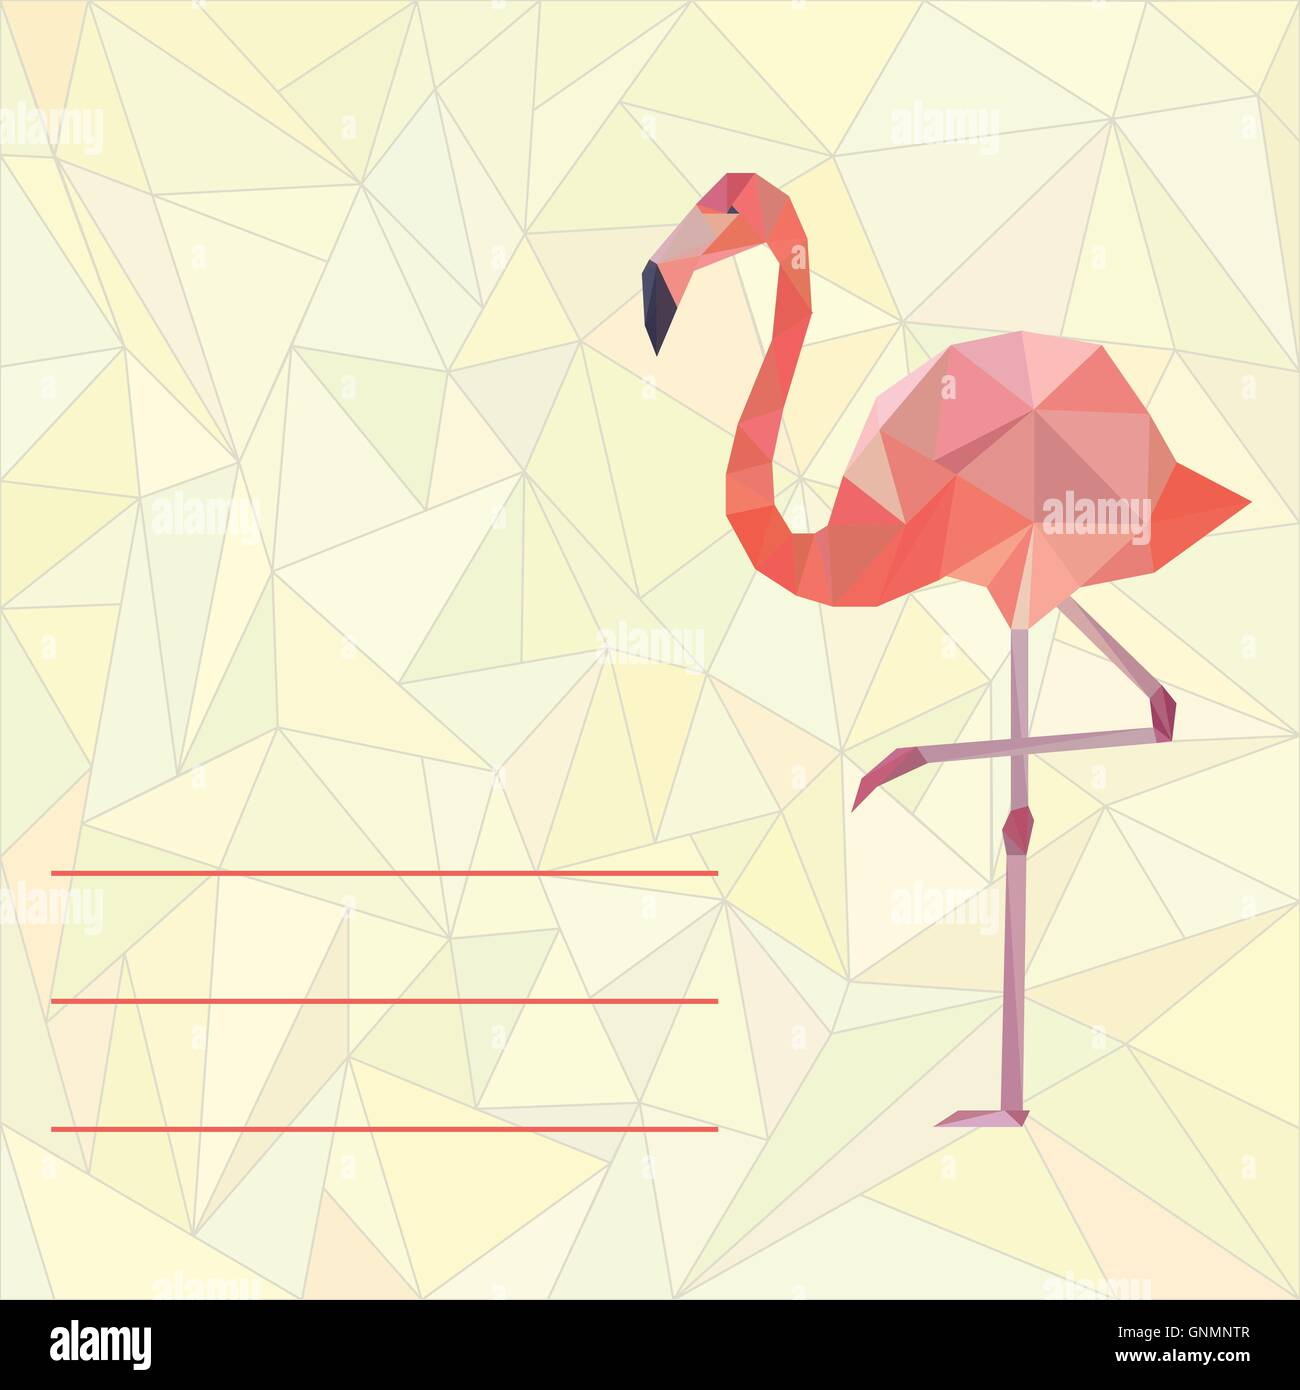 Card template with polygonal flamingo stock vector art card template with polygonal flamingo pronofoot35fo Images